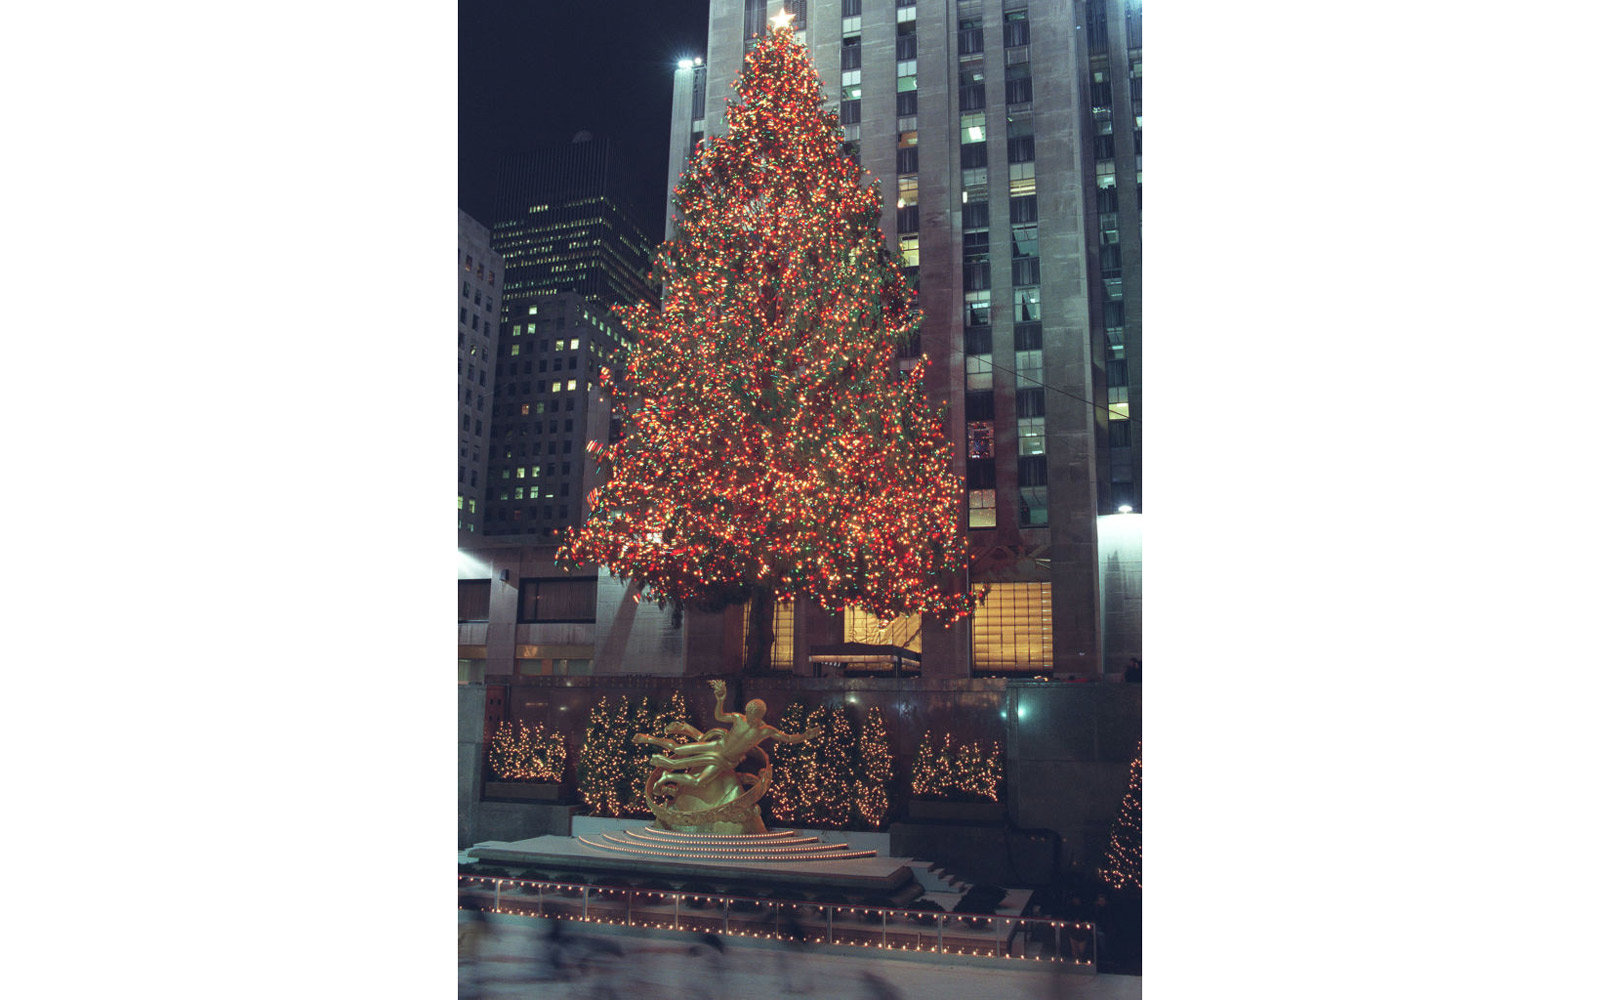 A huge Christmas Tree standing outside the Rockefeller Centre in New York.